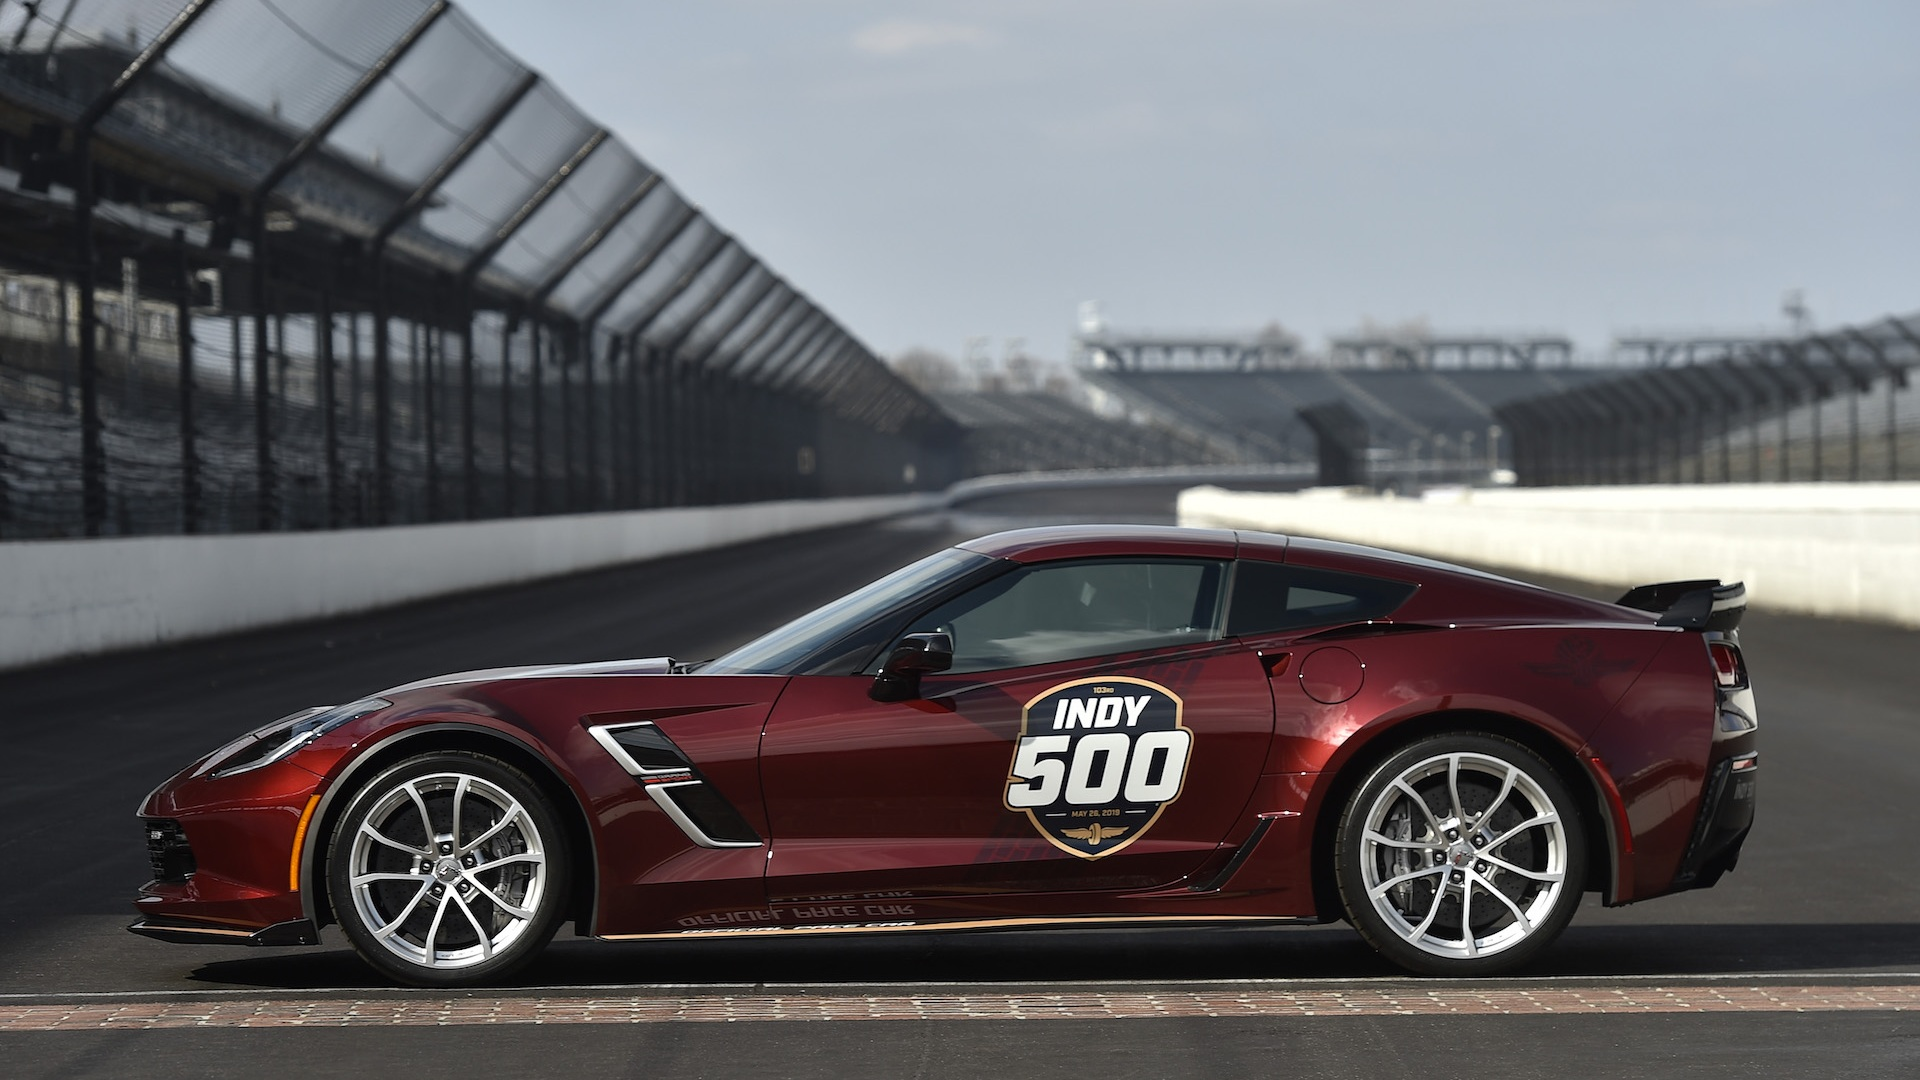 2019 Chevy Corvette Grand Sport to pace 103rd Indy 500 1920x1080